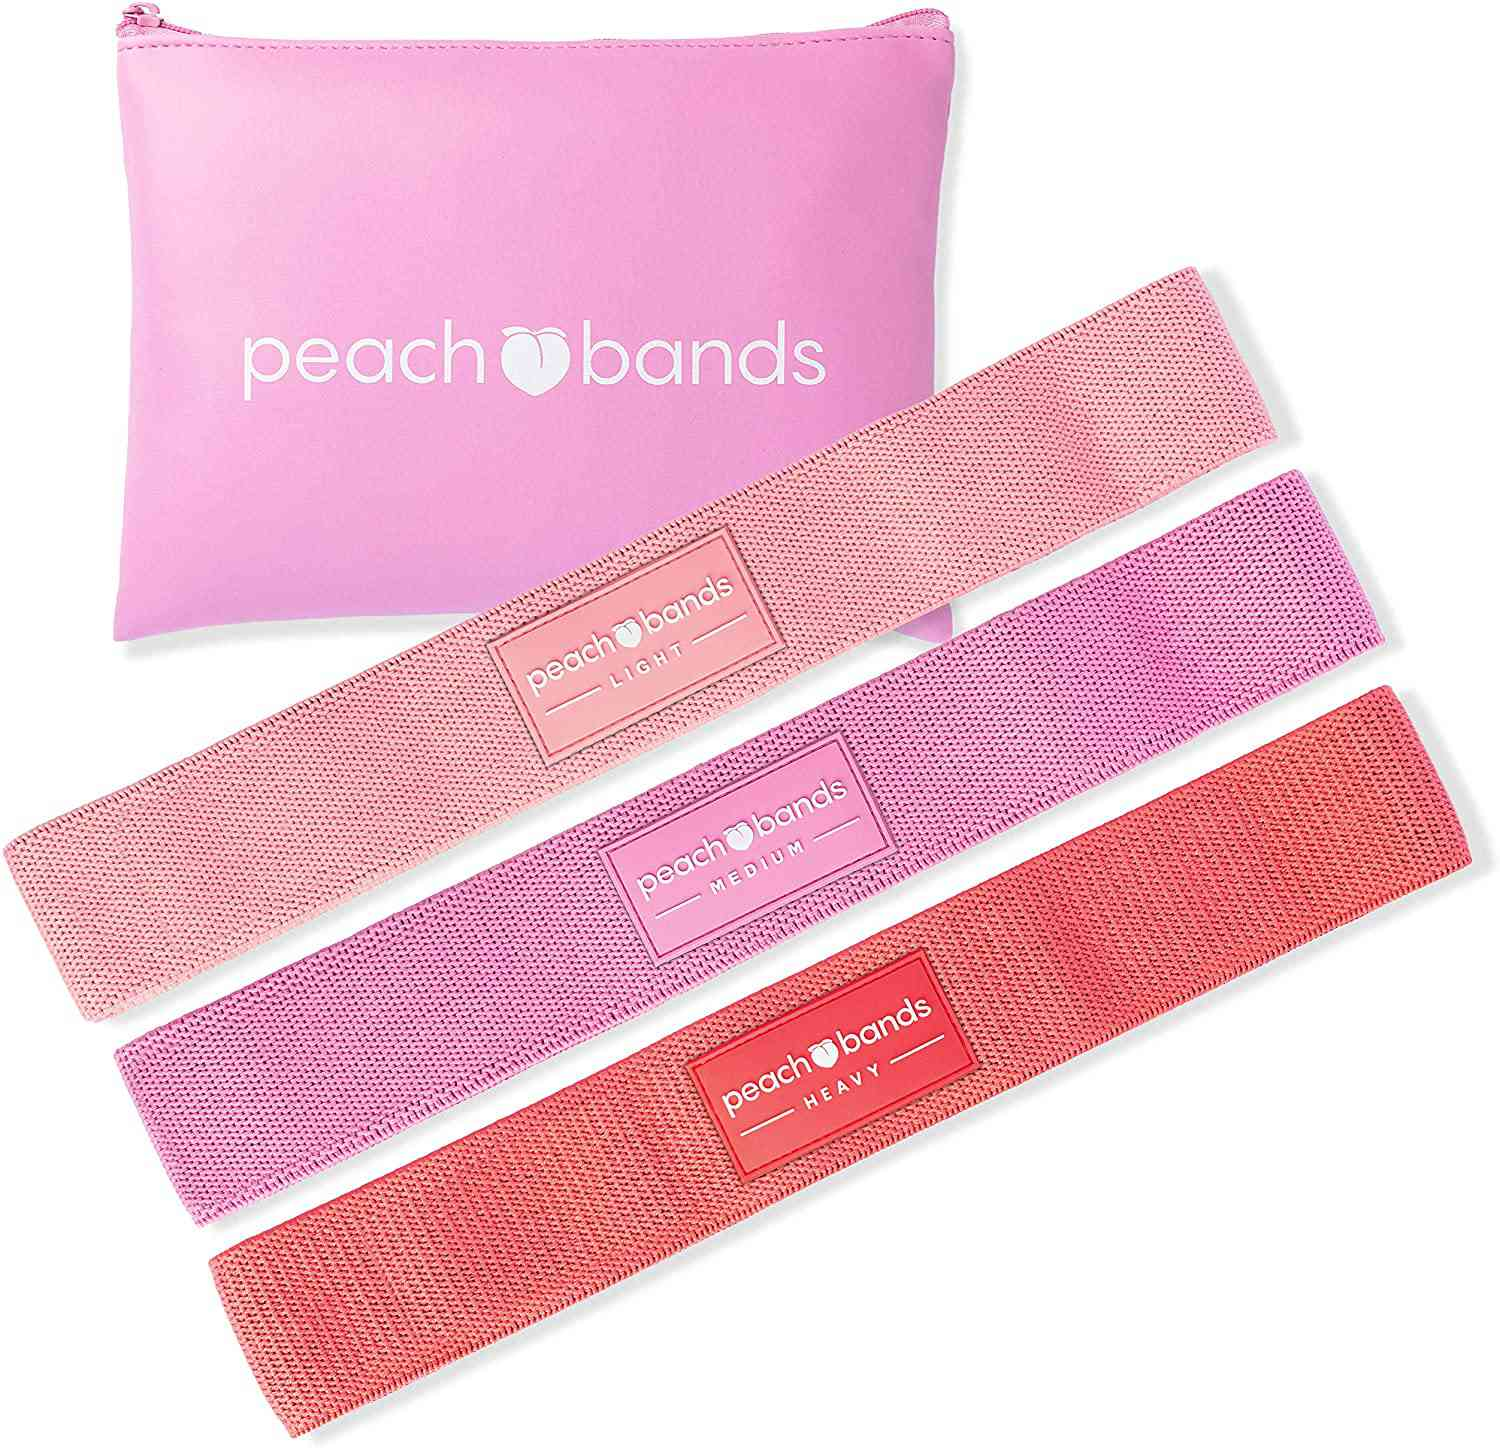 Peach Bands Fabric Resistance Bands